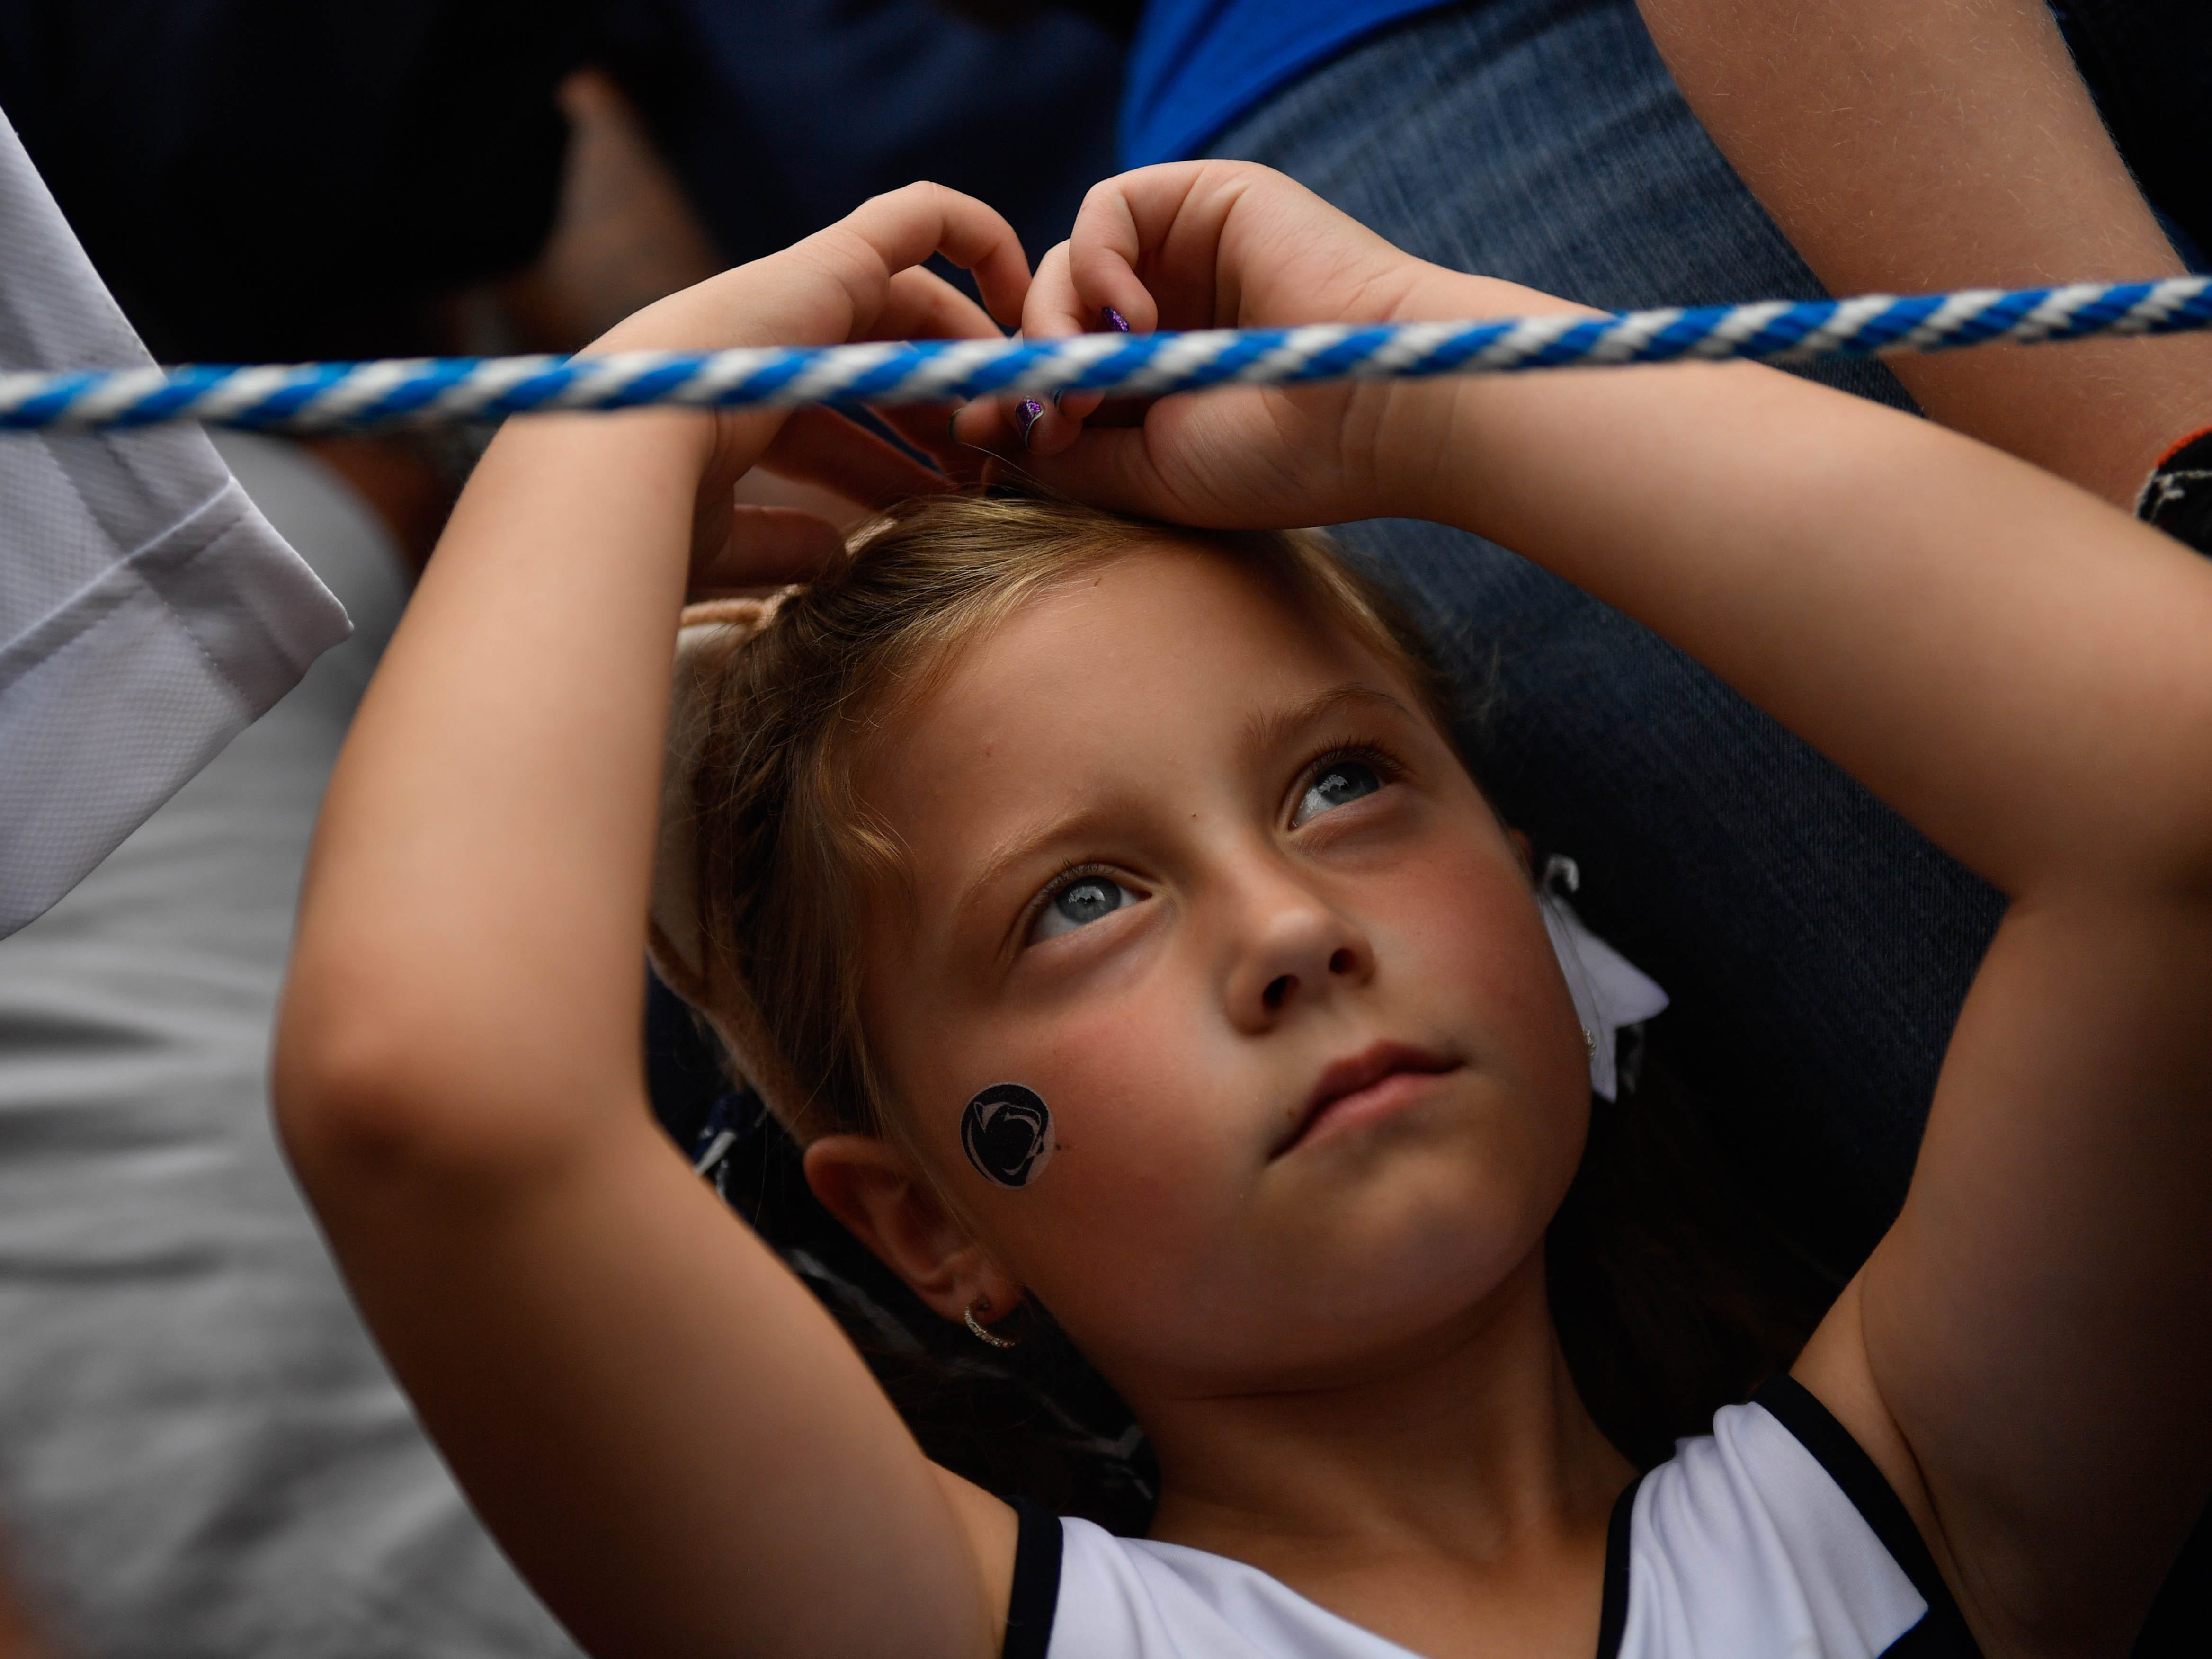 A young Penn State fan patiently waits for the team to arrive at the opener against Appalachian State at Beaver Stadium on September 1, 2018.